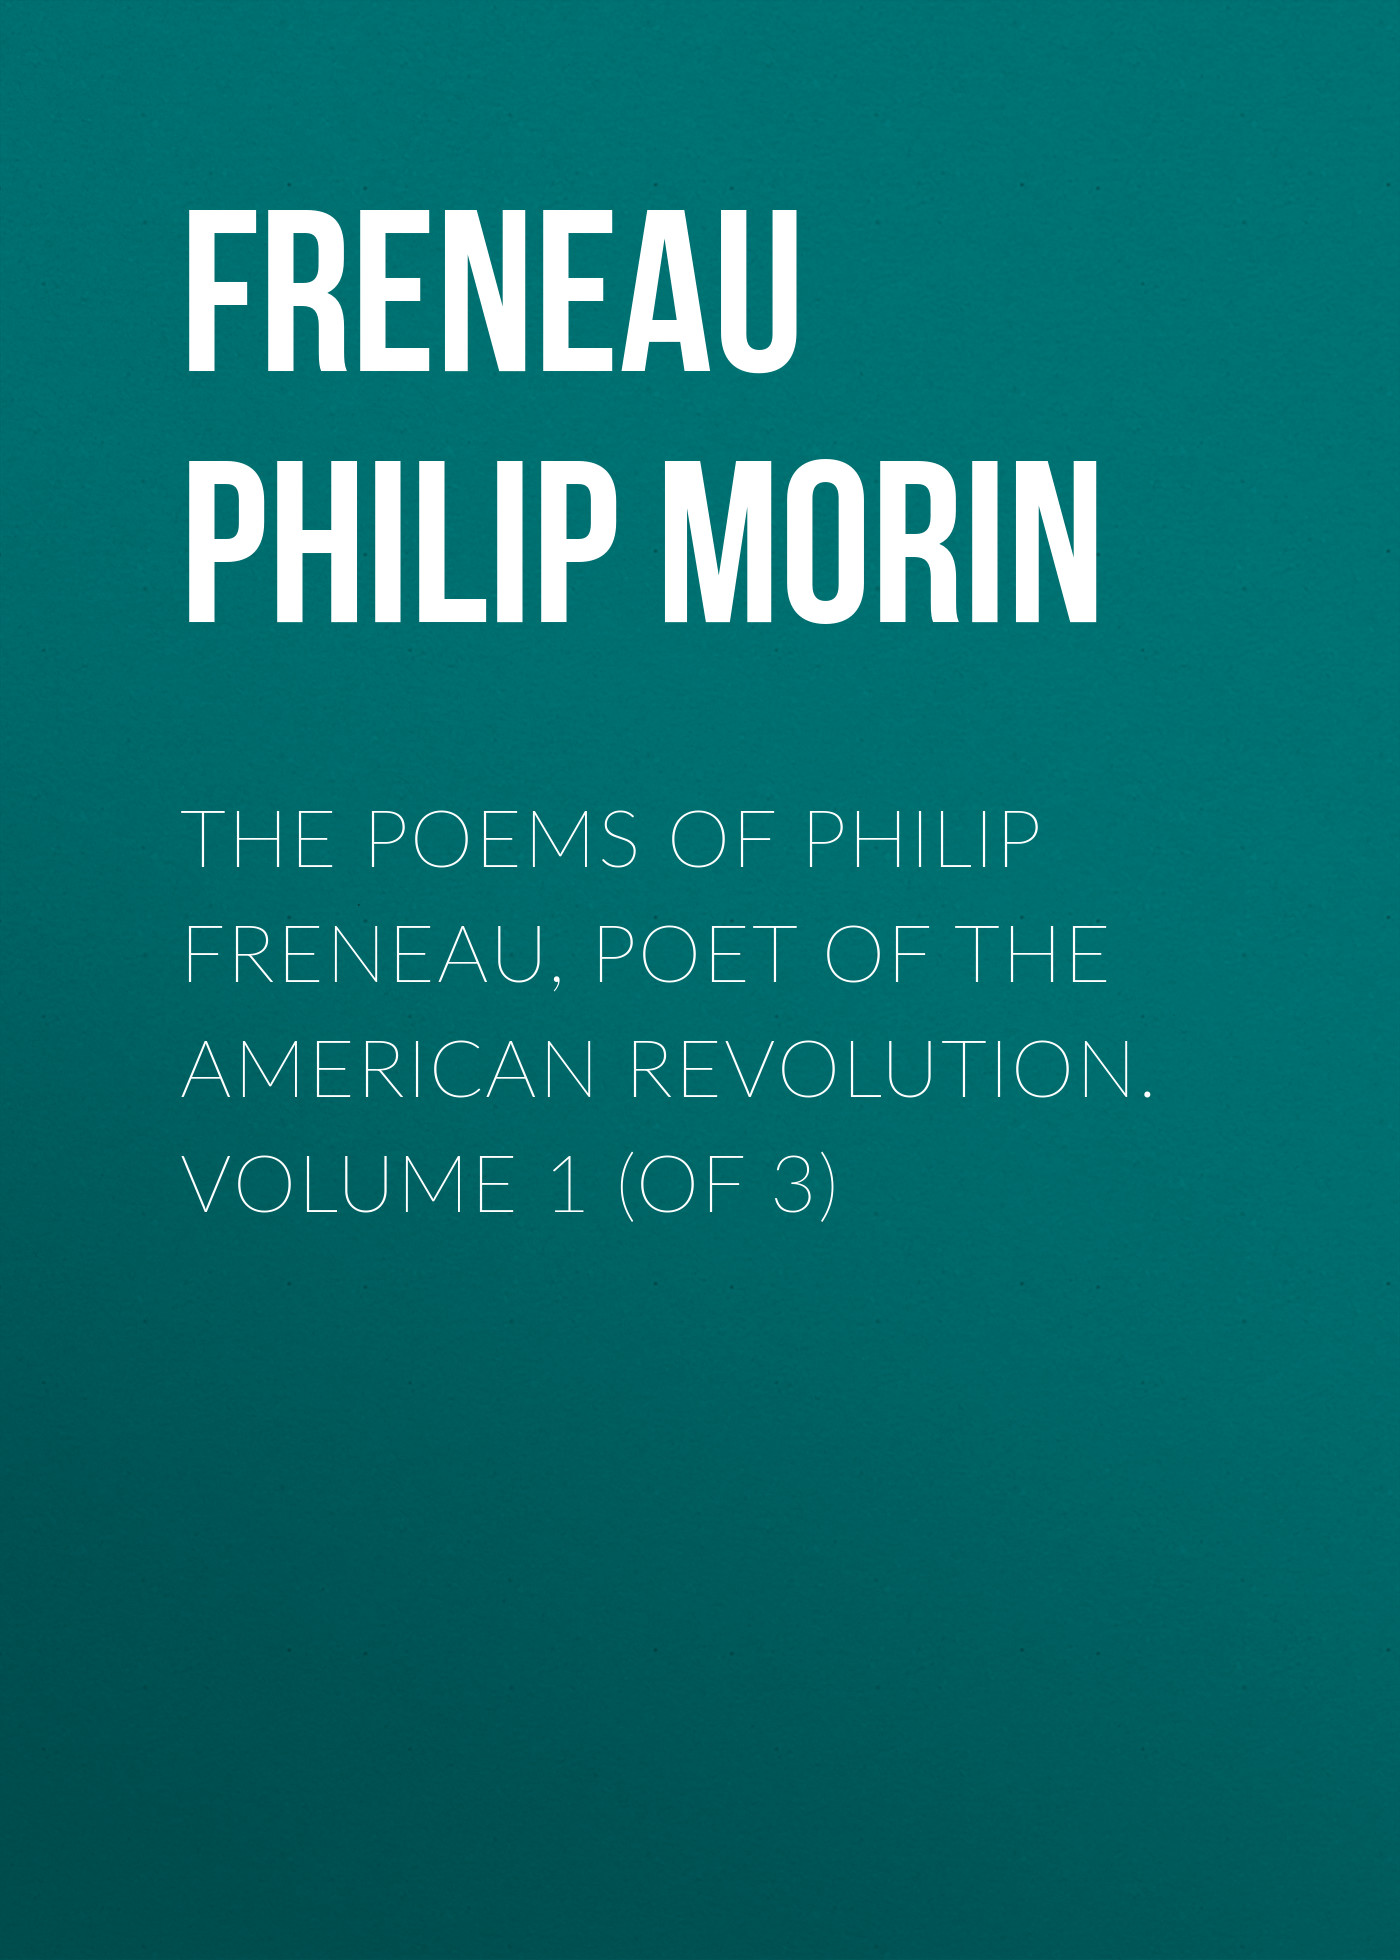 Freneau Philip Morin The Poems of Philip Freneau, Poet of the American Revolution. Volume 1 (of 3) master of war volume 1